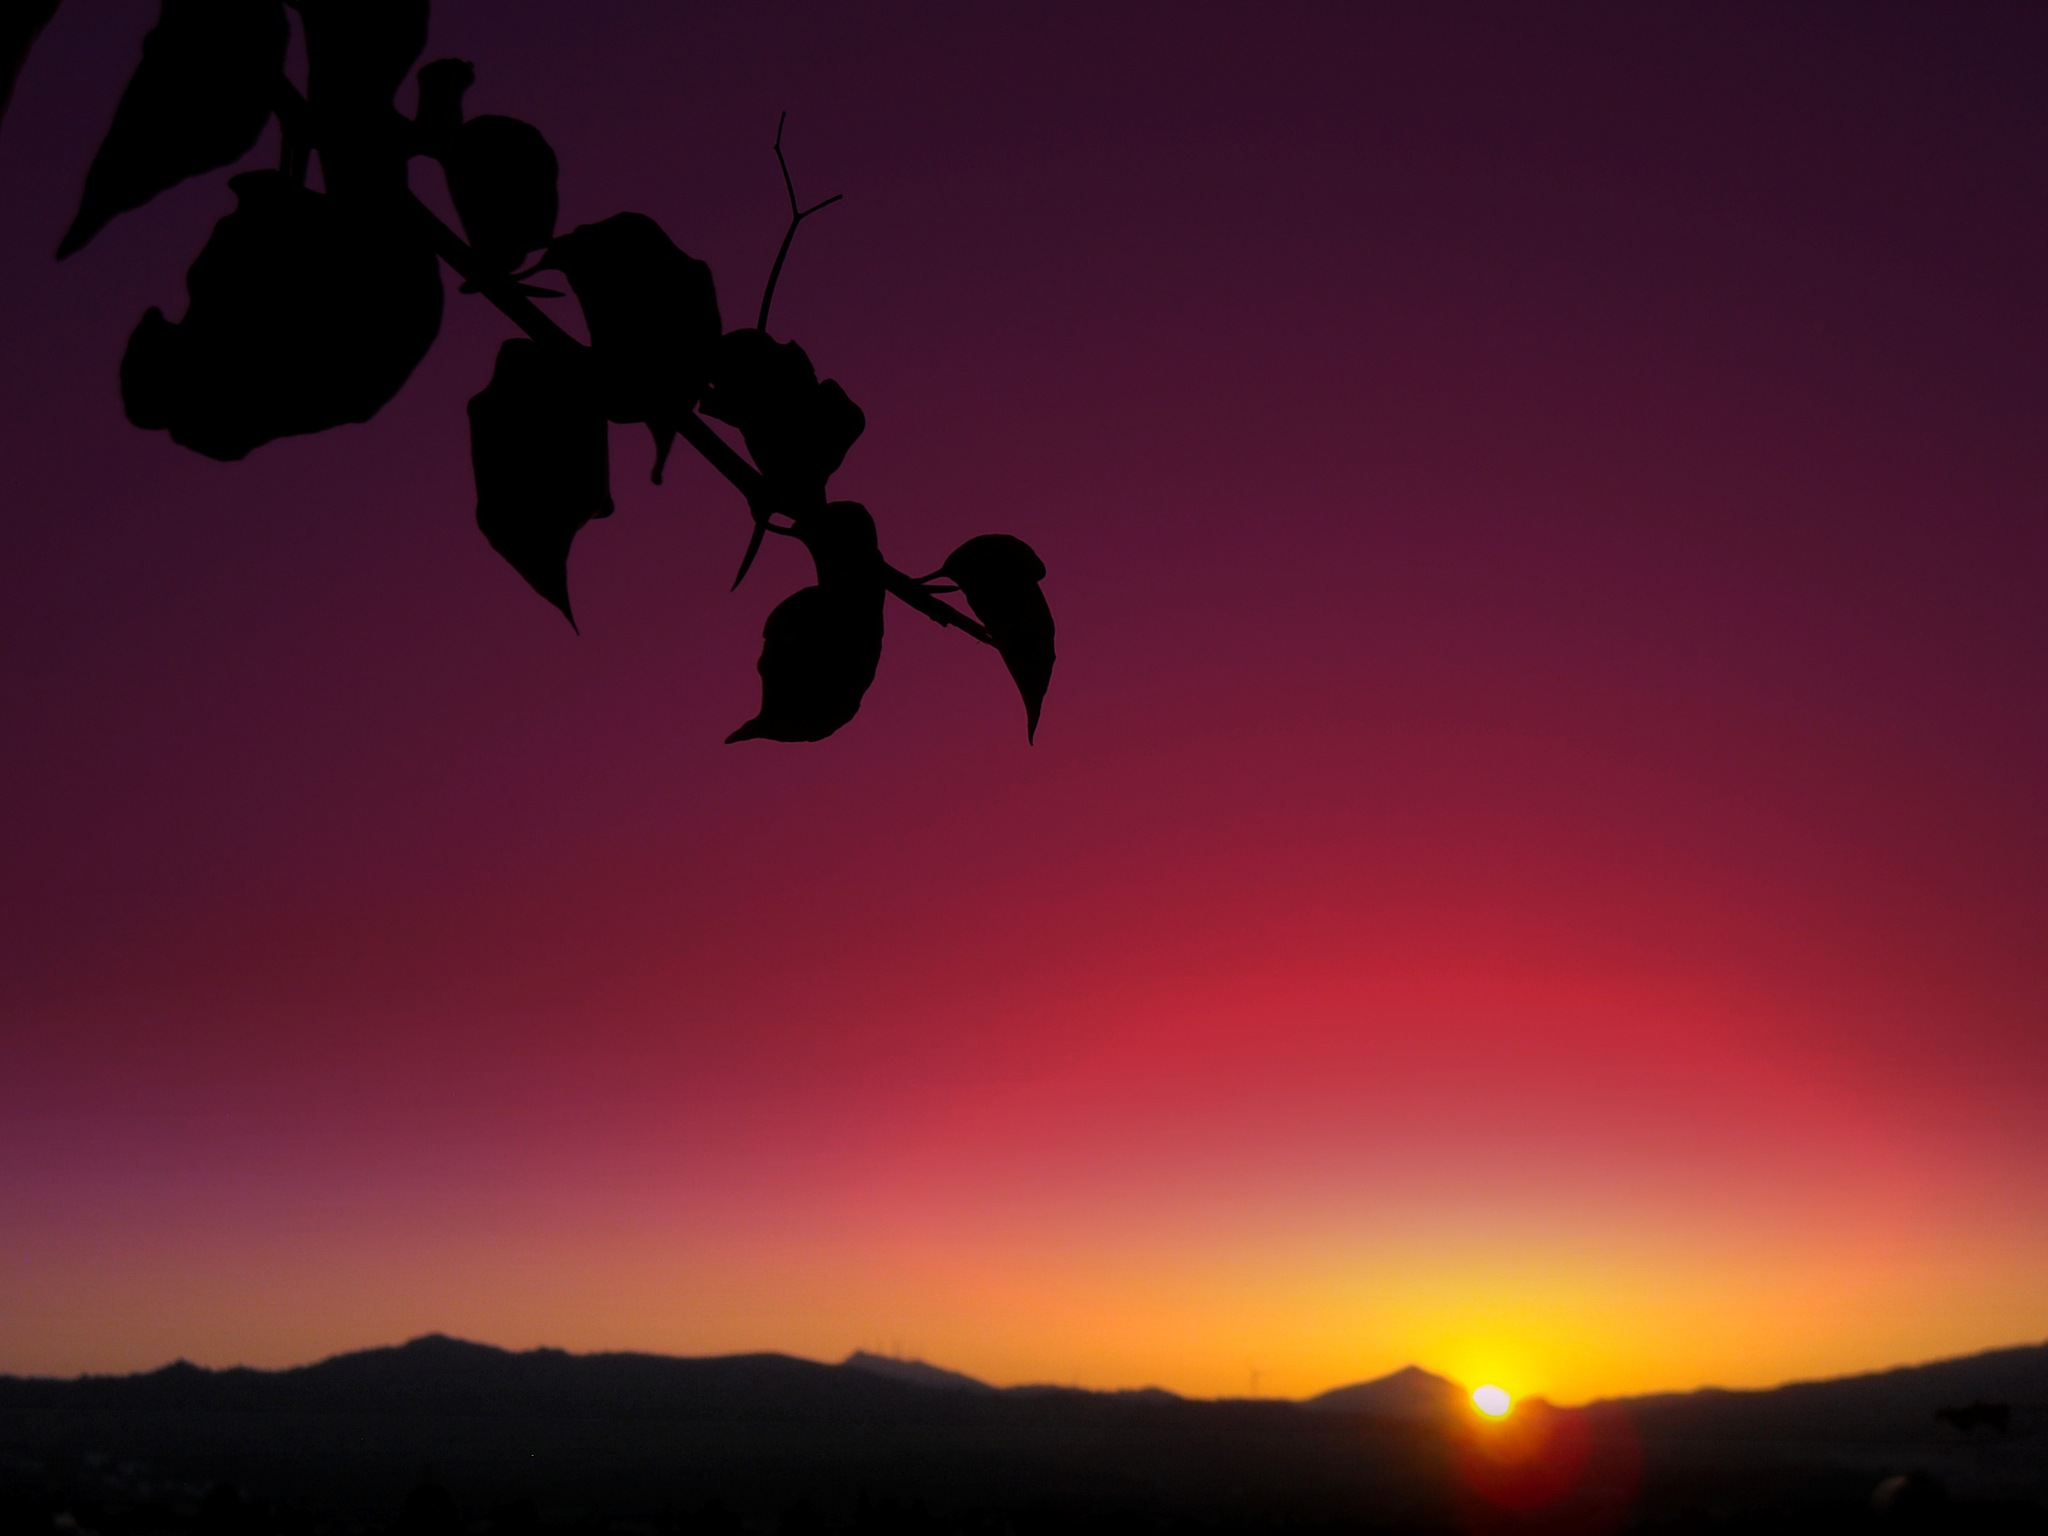 SUNSET BEHIND BEOUG0NVILLEA BRANCH by Akin Saner